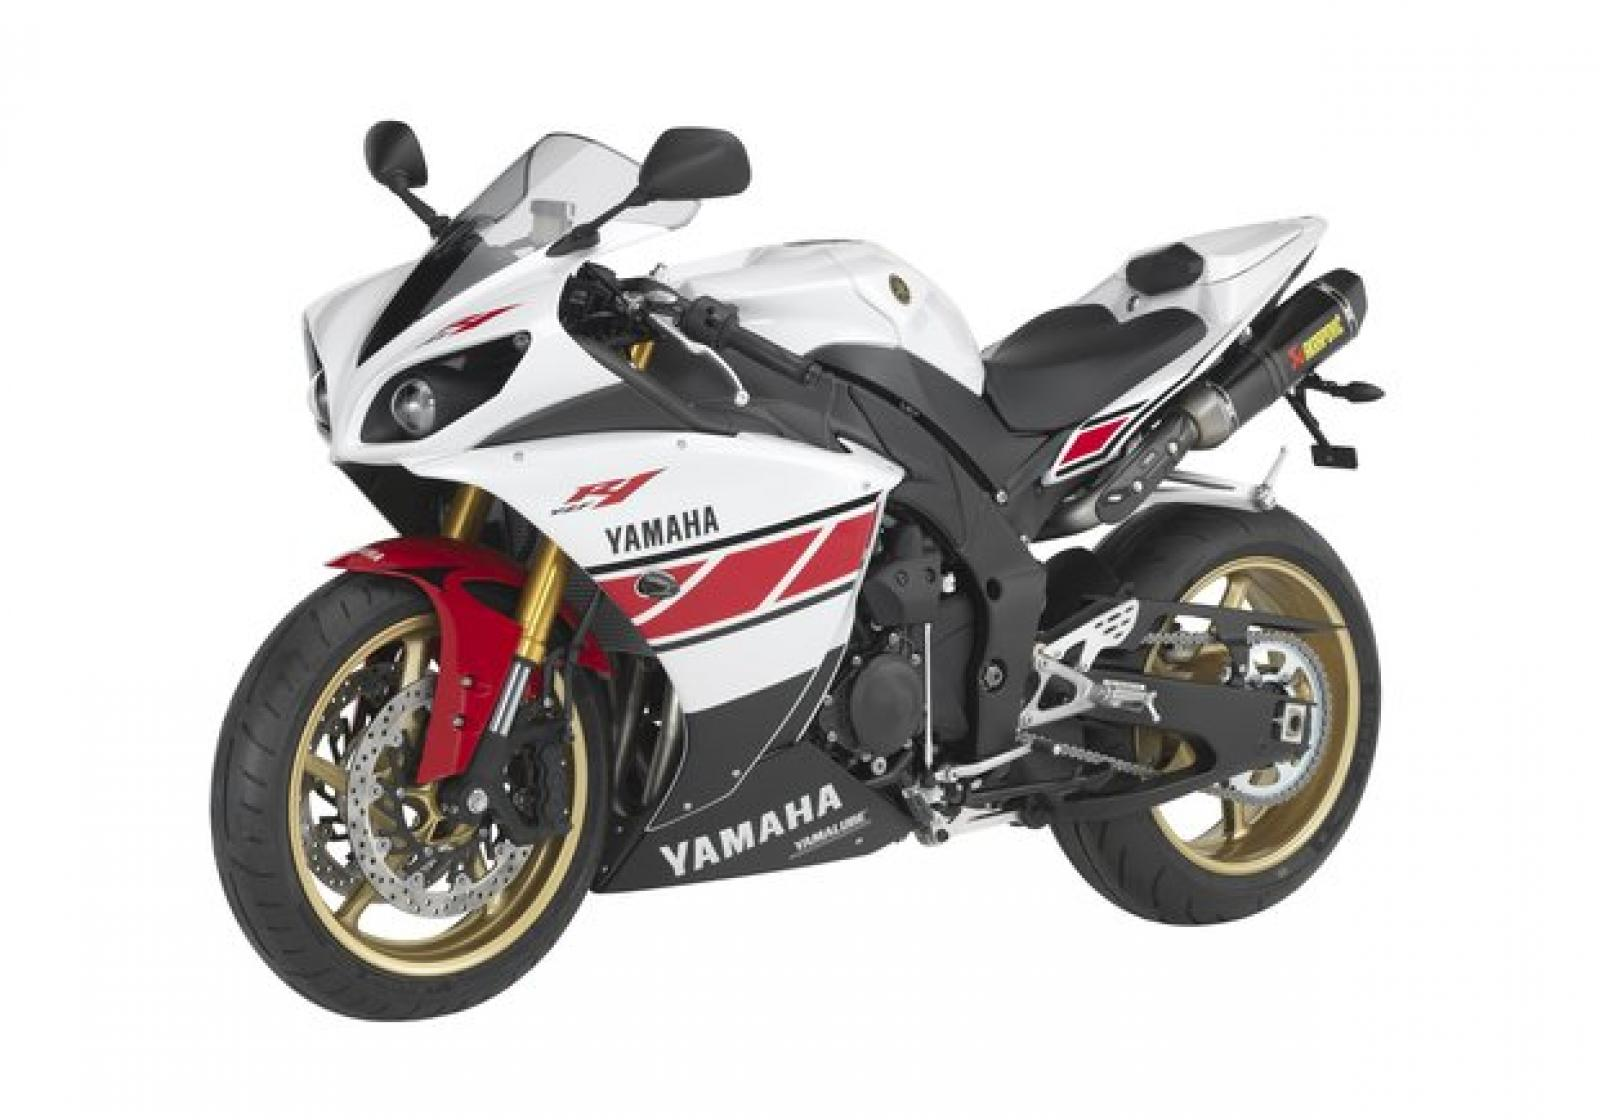 Yamaha yzf-r1sp photo - 8